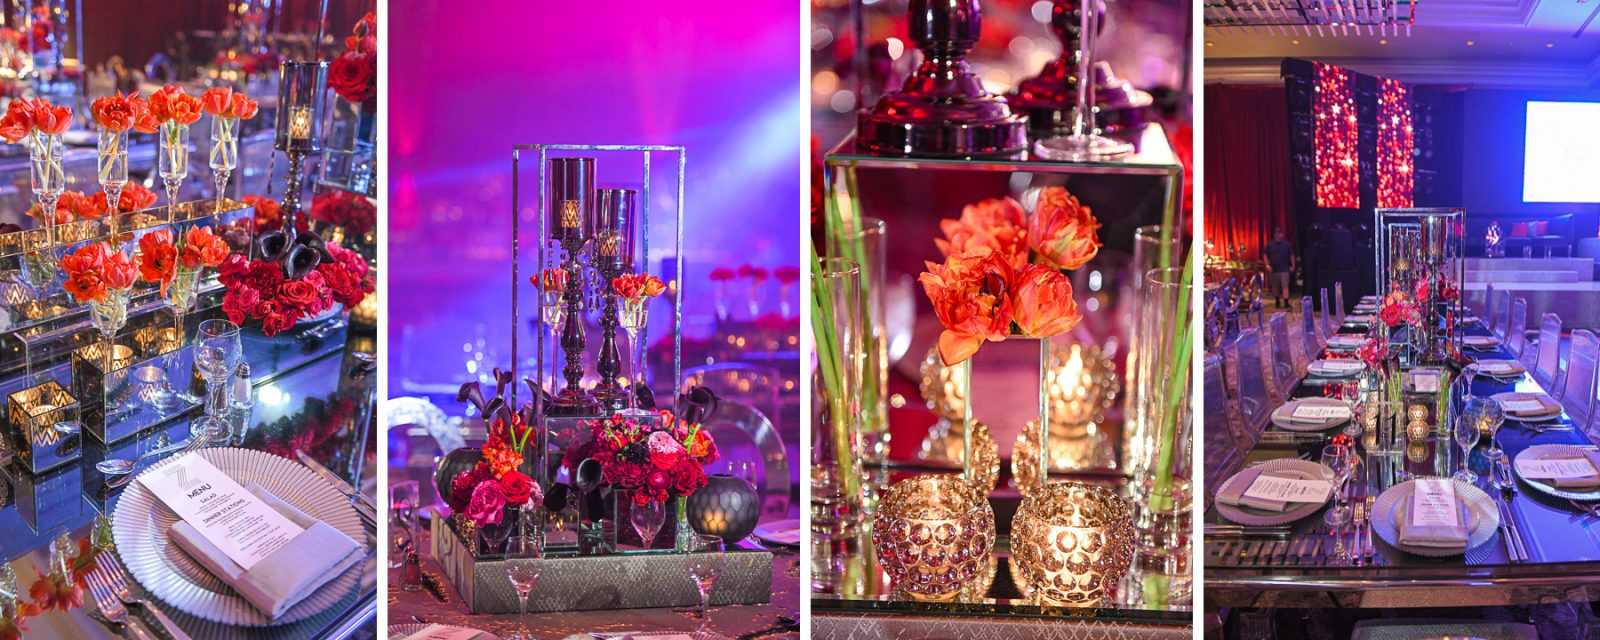 decor at Luxury Celebrity Bat Mitzvah at Four Seasons Hotel Miami by Domino Arts Photography